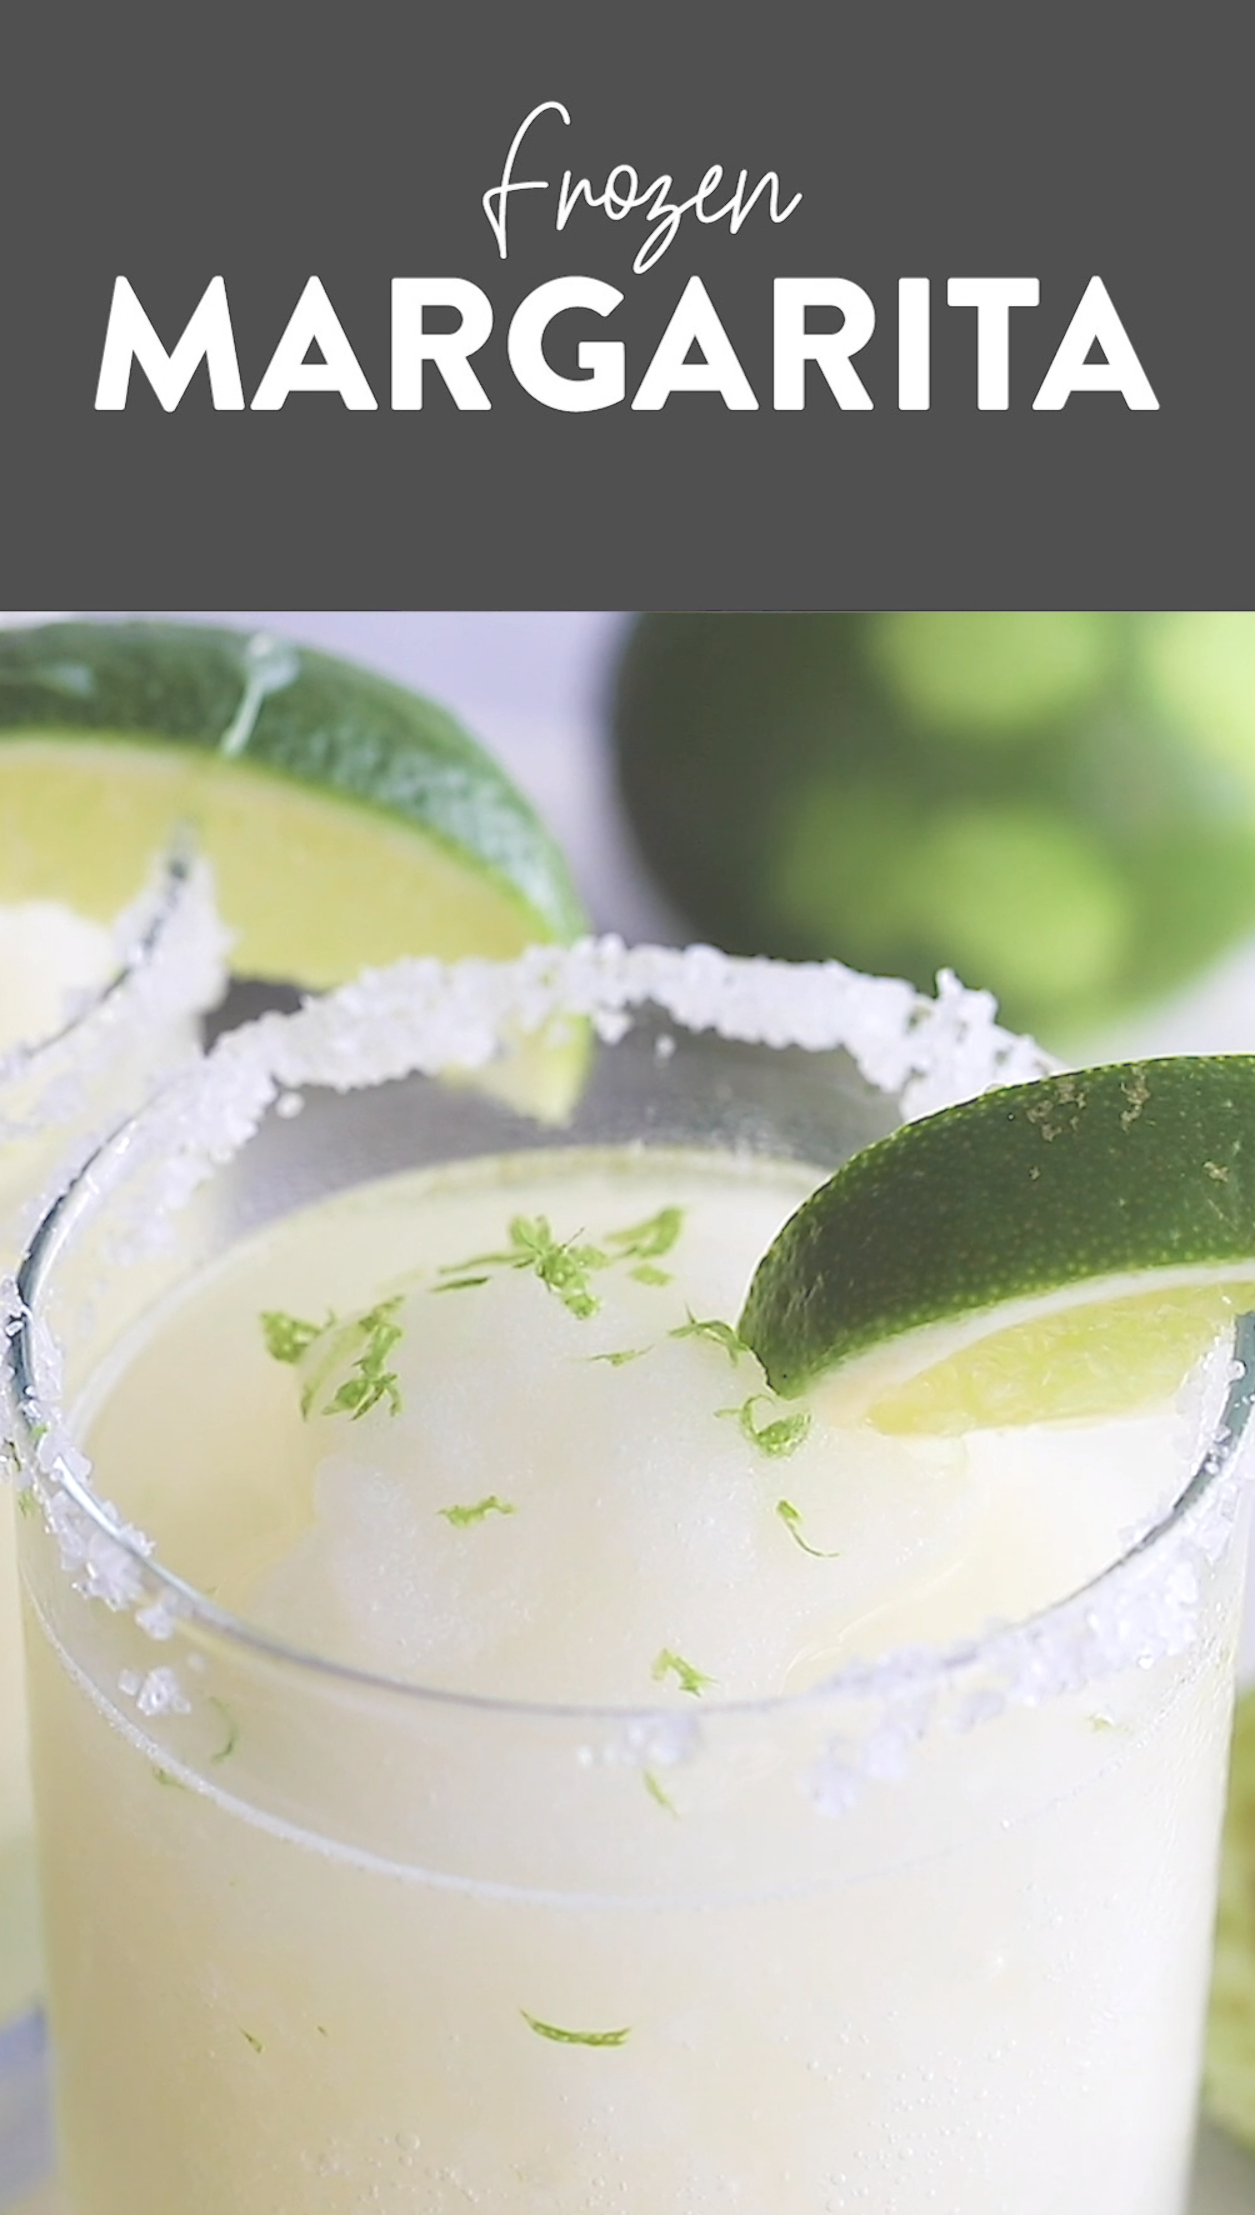 With just 5 basic ingredients you can whip up the best frozen margarita recipe in under 10 minutes! Make these frozen margaritas all summer long! #frozenmargaritarecipes With just 5 basic ingredients you can whip up the best frozen margarita recipe in under 10 minutes! Make these frozen margaritas all summer long! #frozenmargaritarecipes